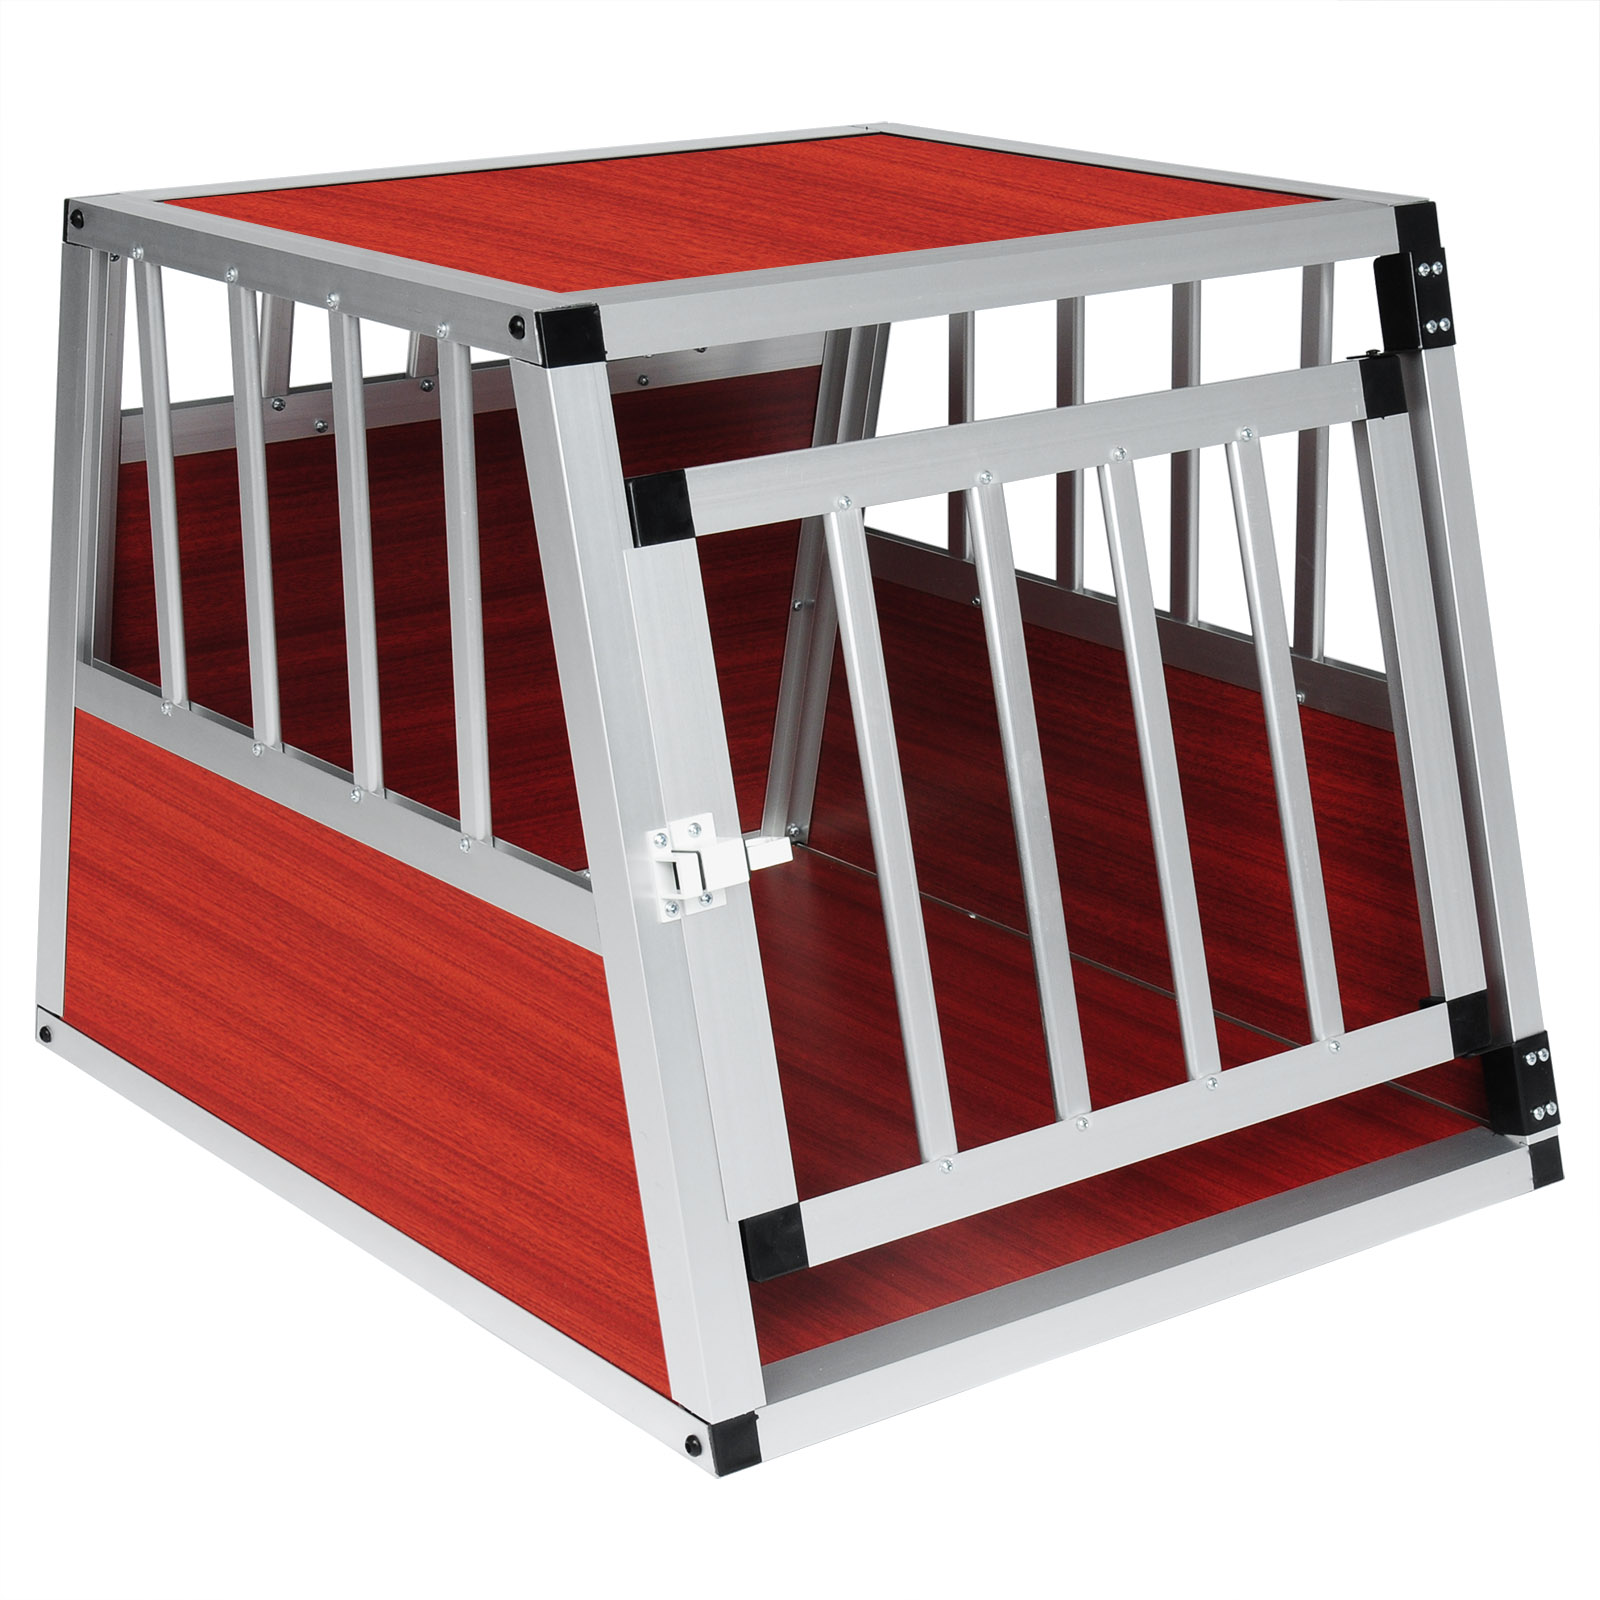 chien cage voiture cage de chien chenil en aluminium de tansport f074 ebay. Black Bedroom Furniture Sets. Home Design Ideas